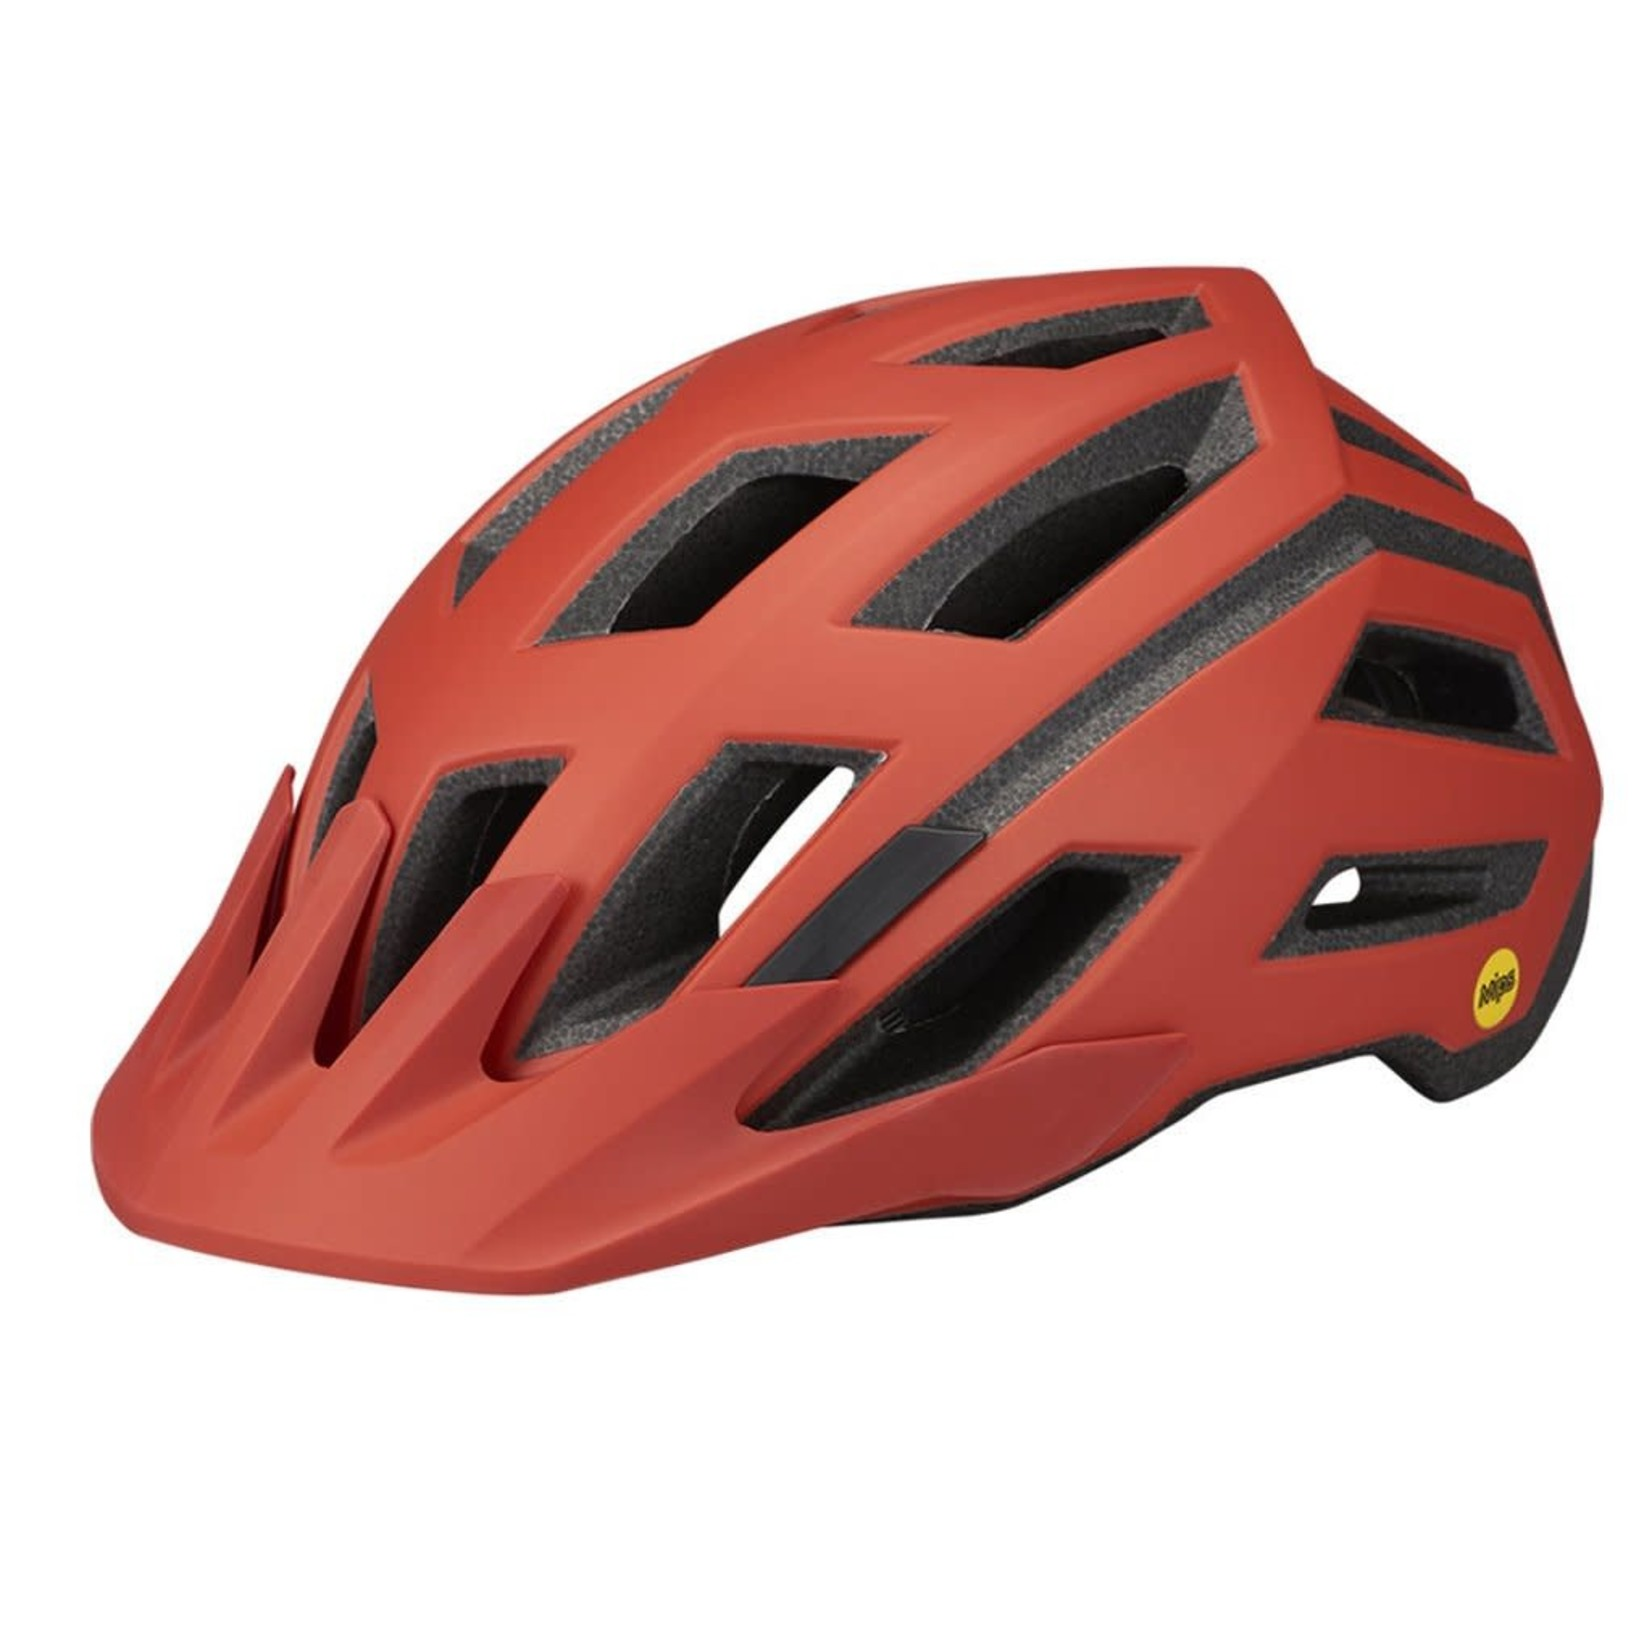 Specialized Specialized Tactic 3 Helmet, Red, S